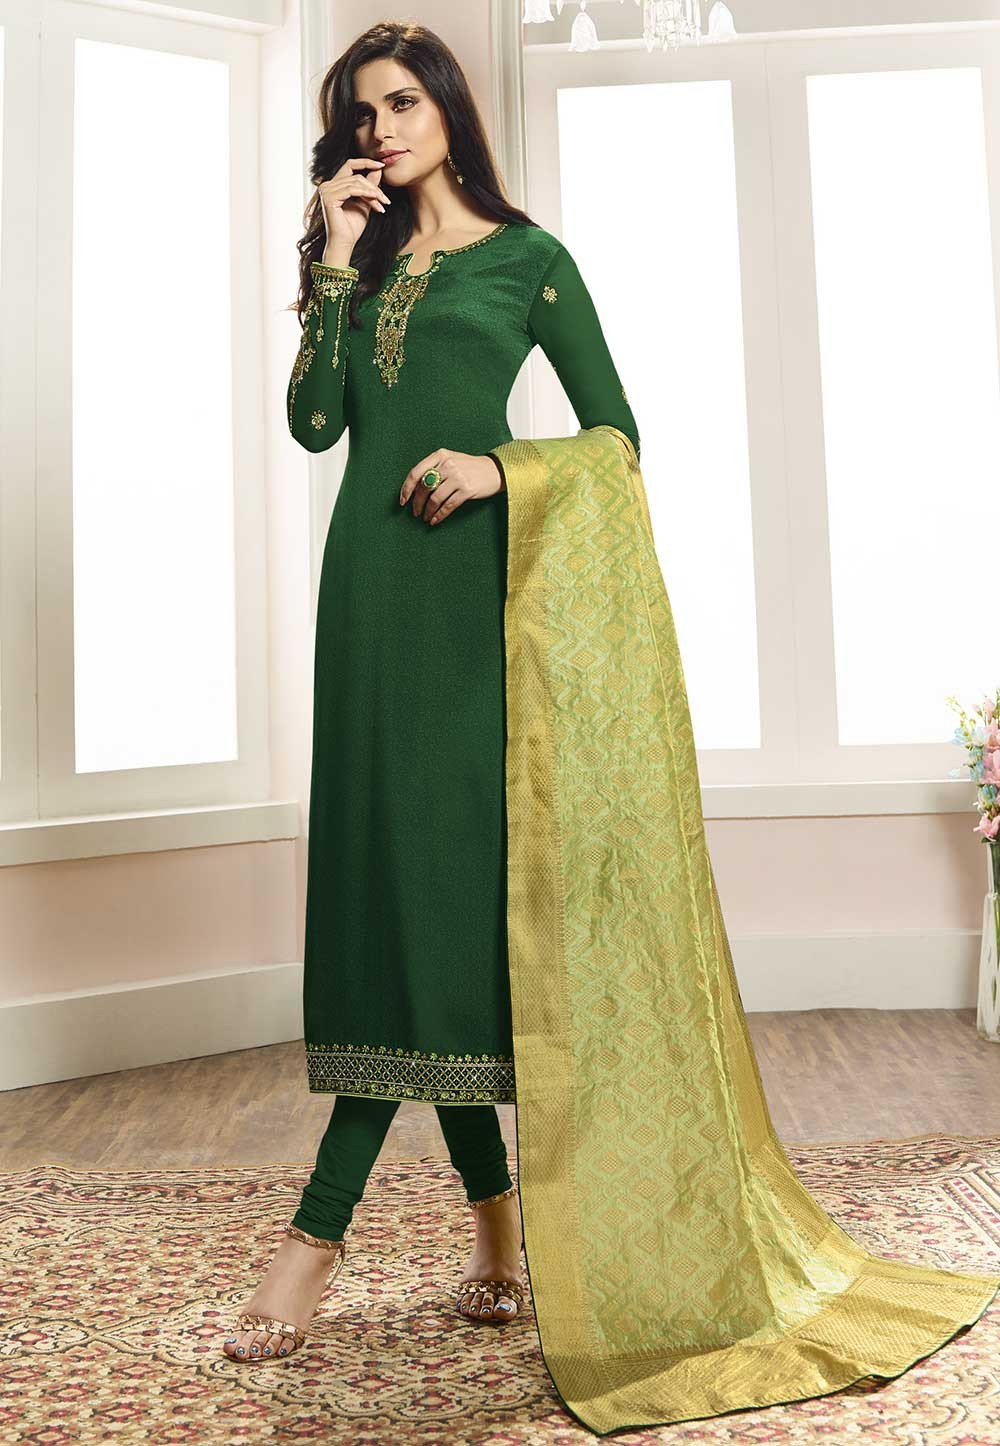 Green Colour Silk Salwar Suit.